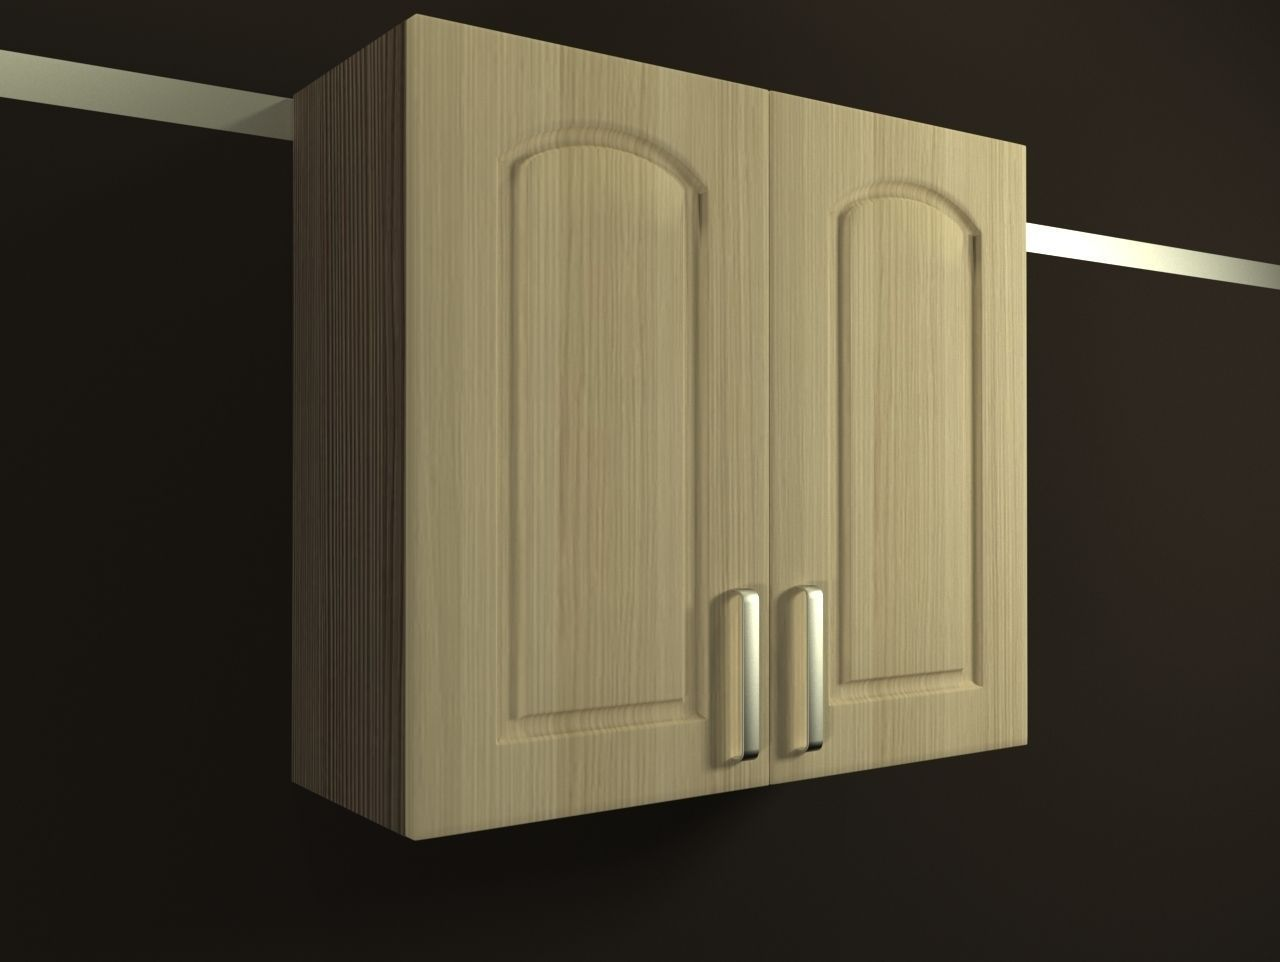 kitchen cabinet 720 800mm free 3d model max